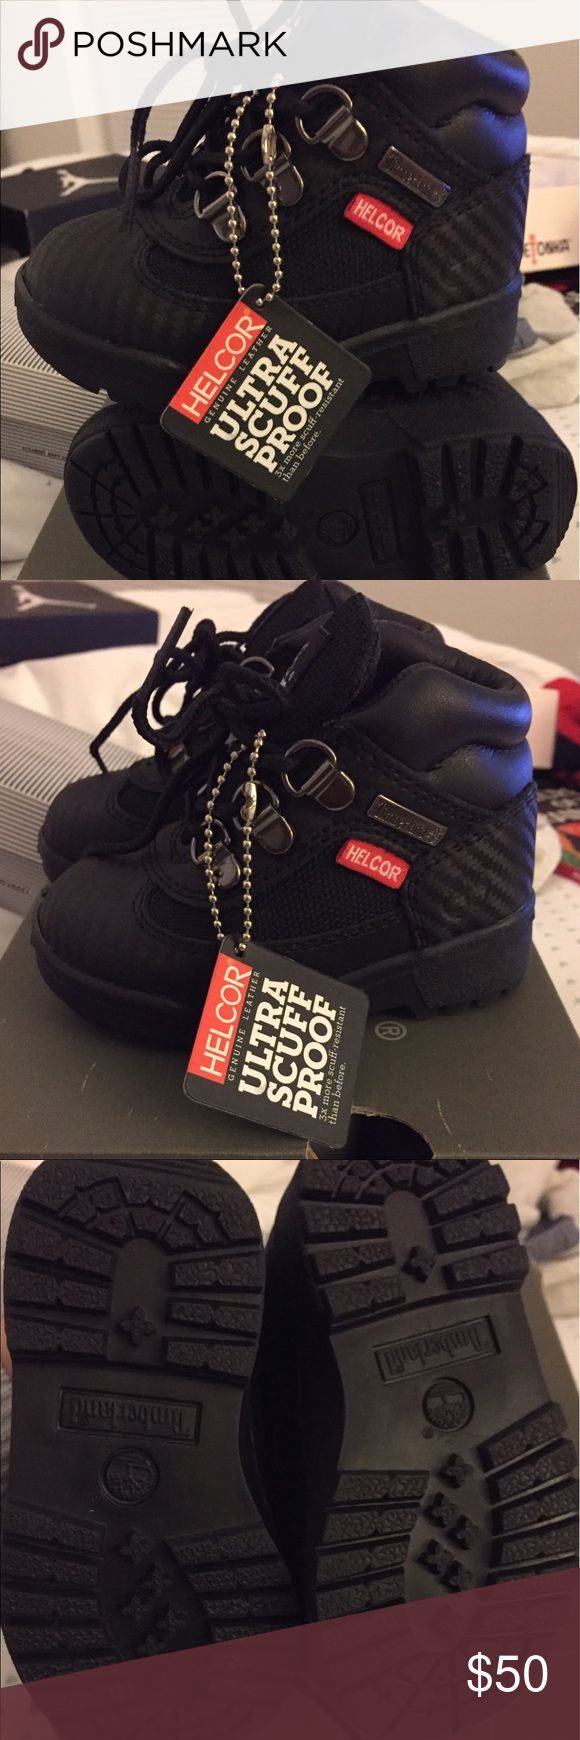 Timberland toddler boot size 6t New ultra scuff proof toddler timberland boot in Excellent condition, box kept. Timberland Shoes Boots